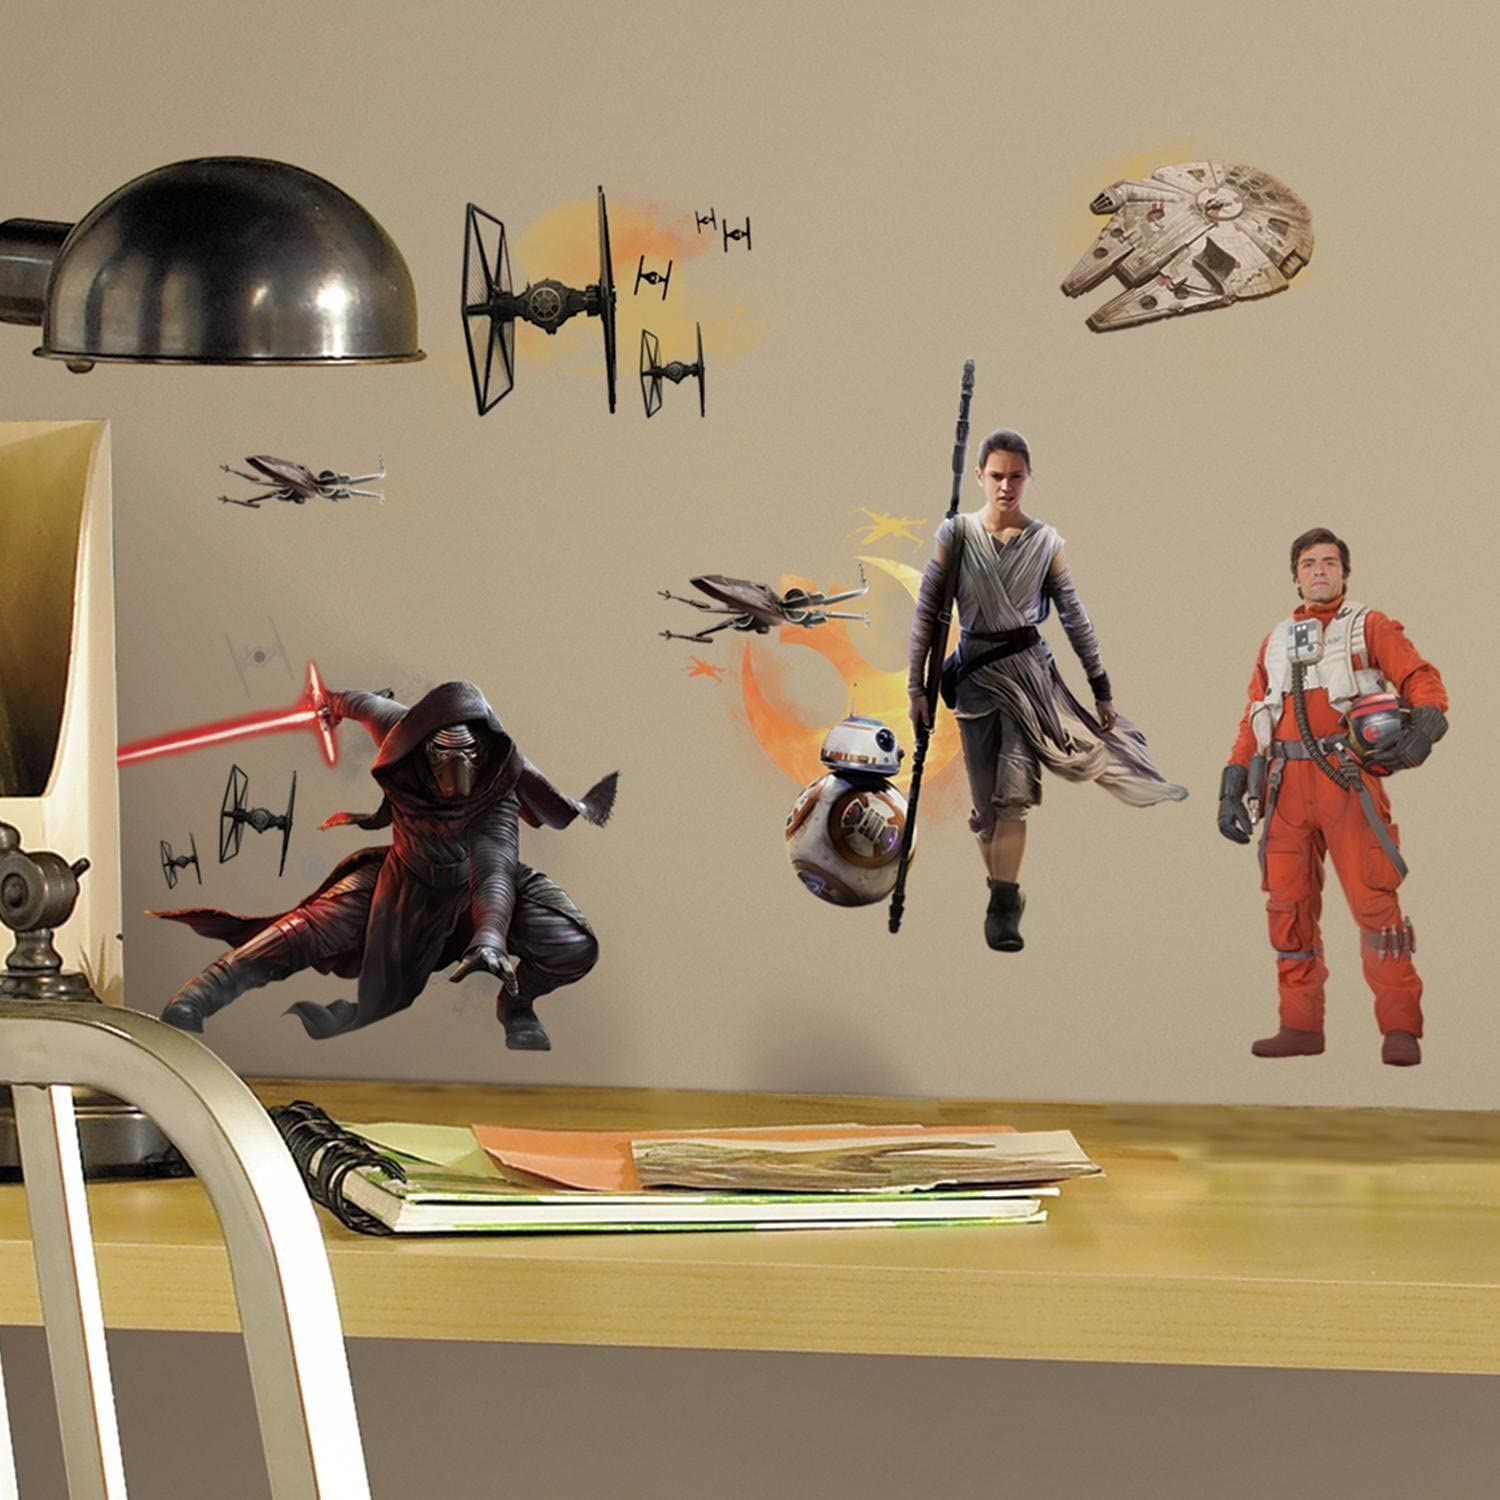 Roommates Star Wars The Force Awakens Ep Vii Ensemble Cast P&S Wall Decals